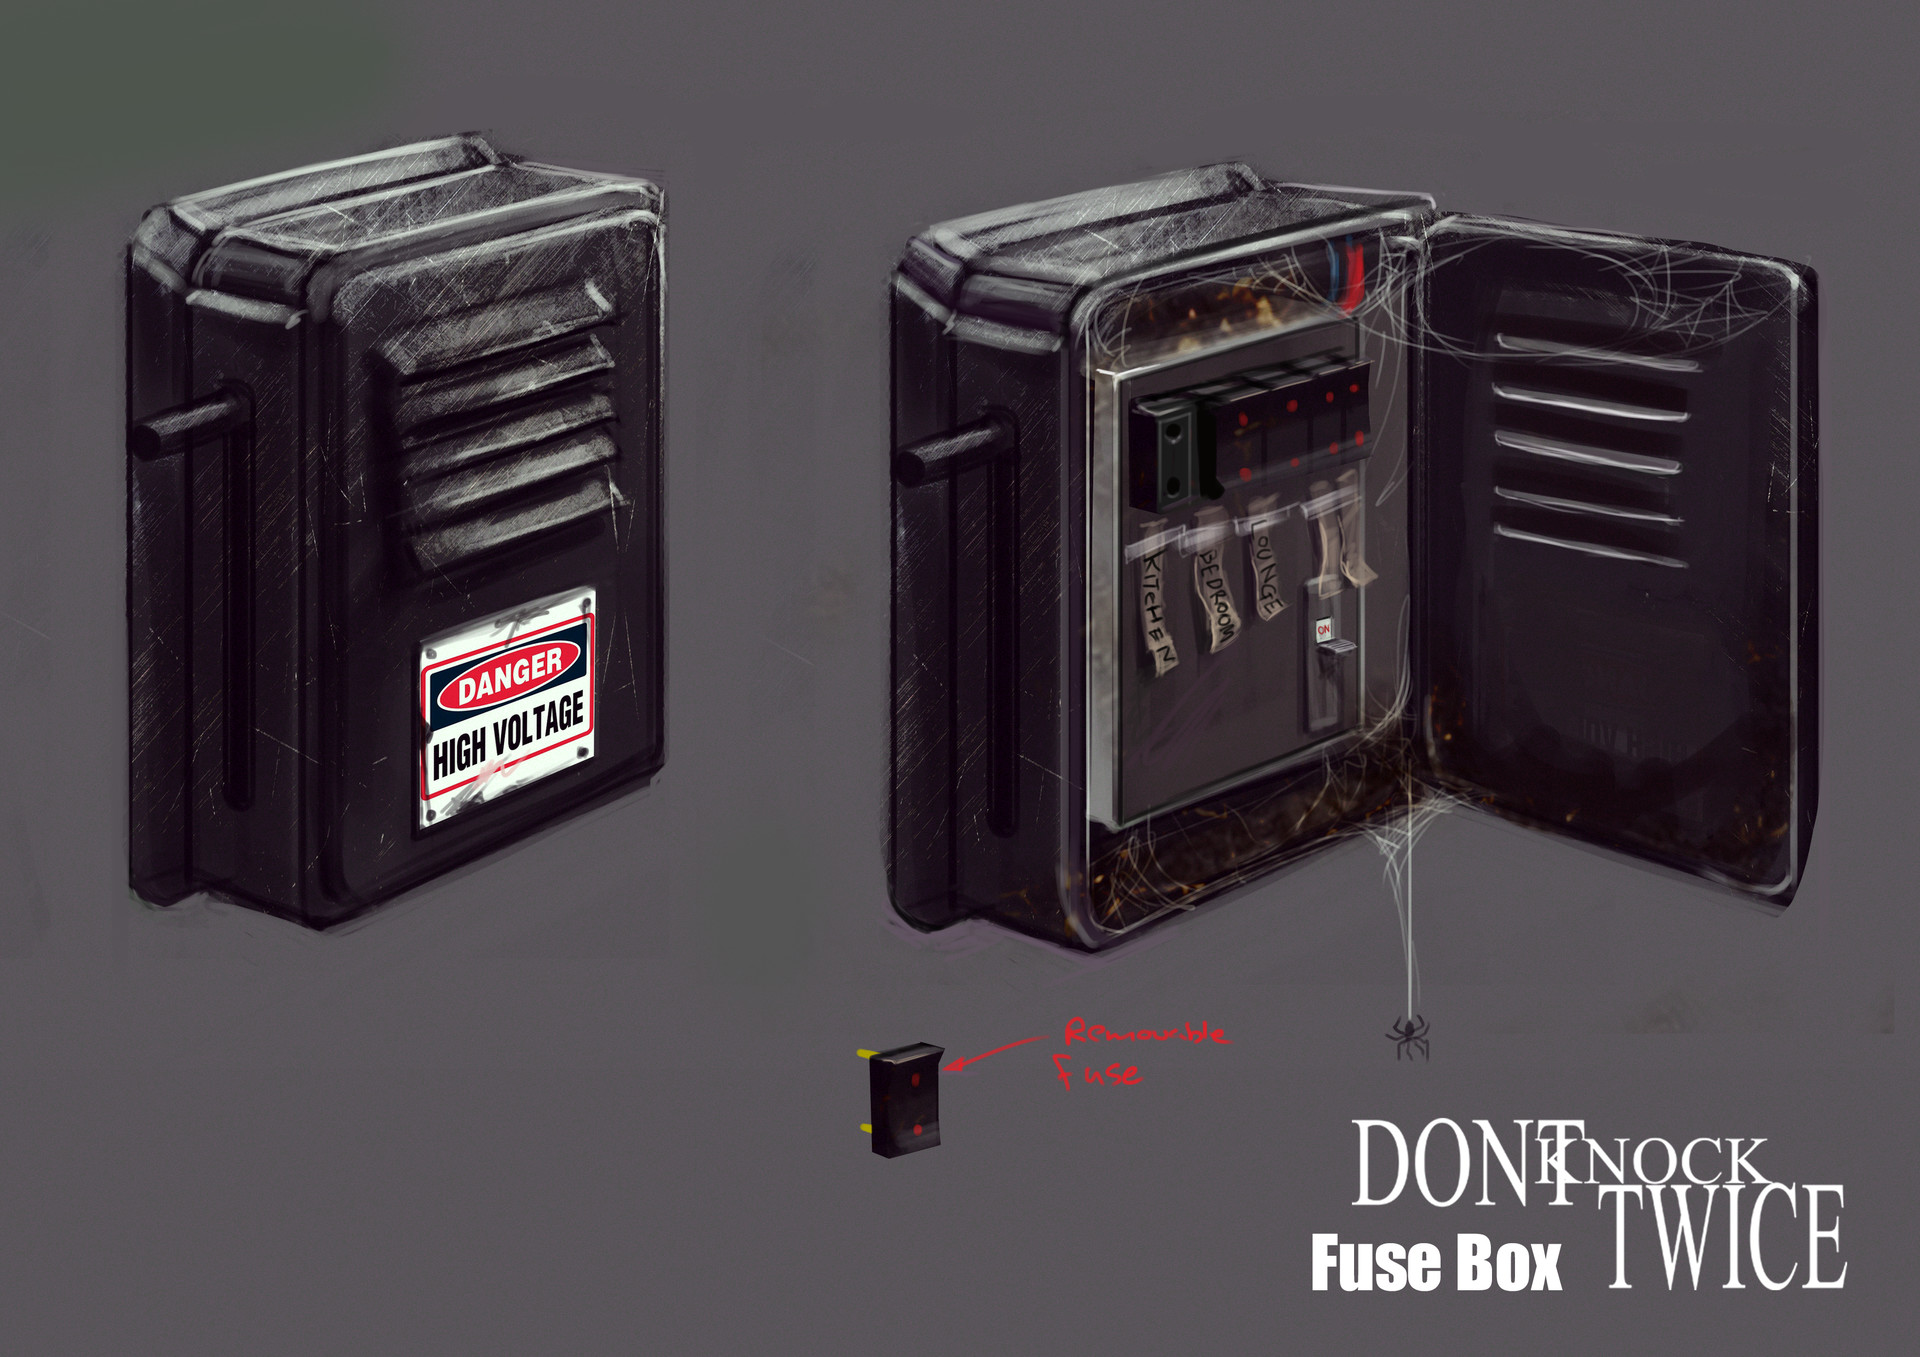 medium resolution of fuse box that the player would interact with